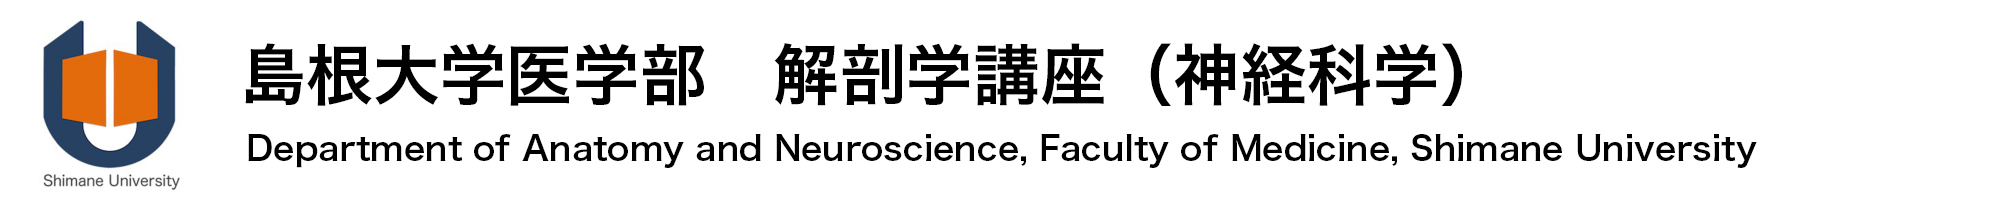 Department of Anatomy and Neuroscience, Faculty of Medicine, Shimane University